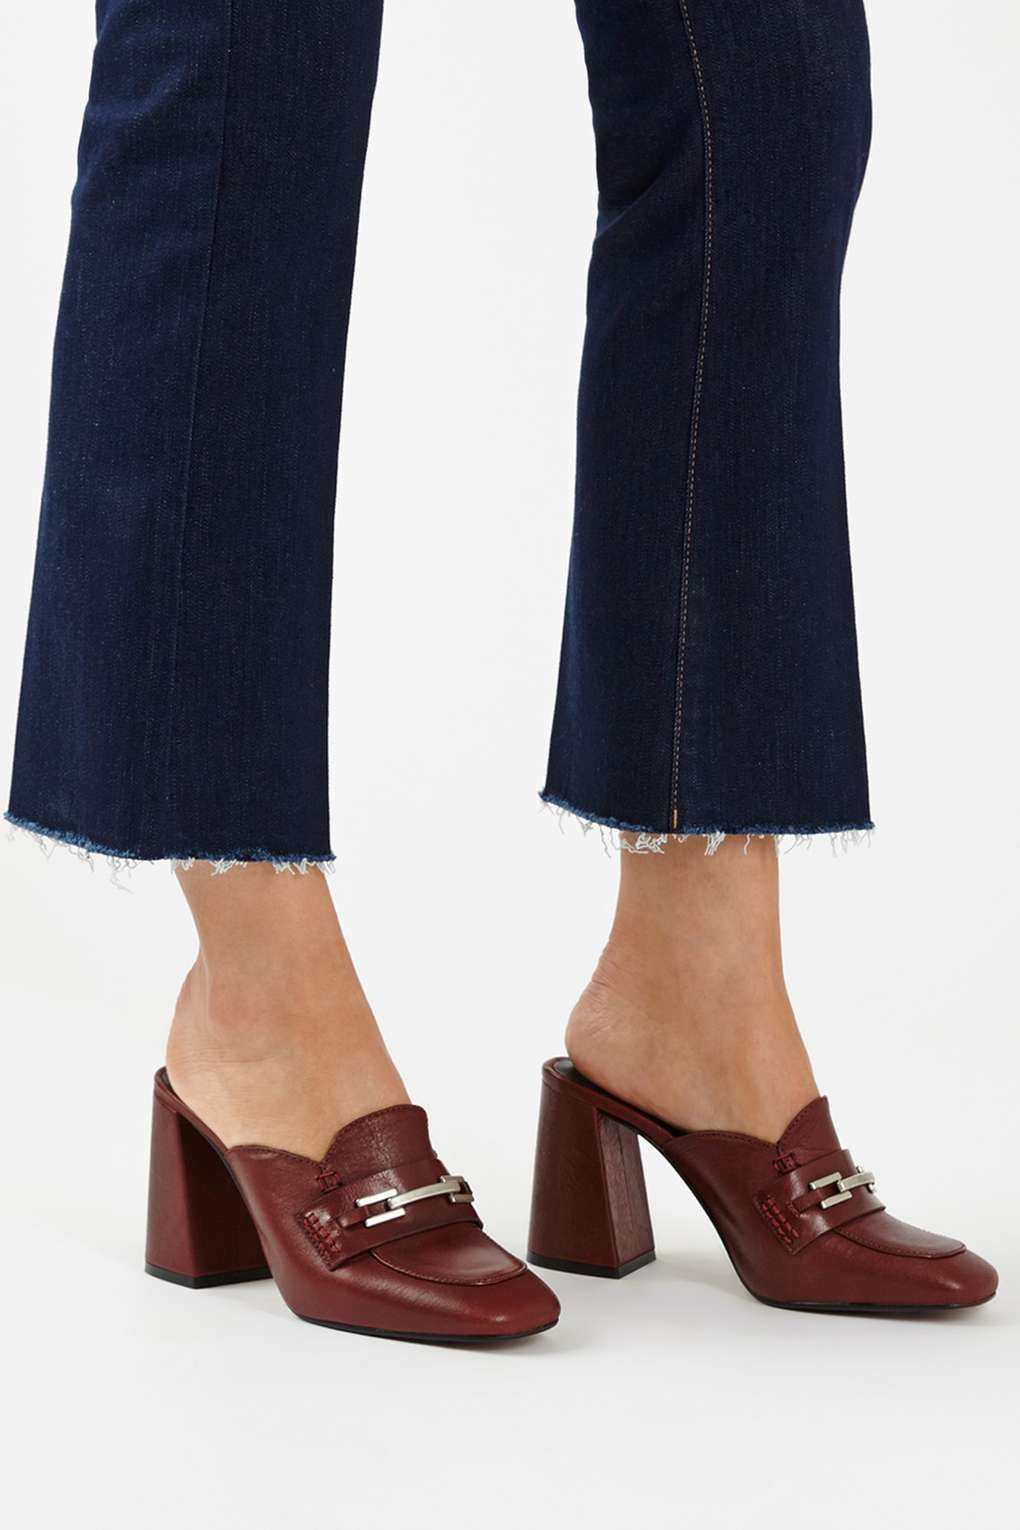 Topshop's heeled loafer-mules will elevate your workwear wardrobe this autumn. Get them while they're on sale!